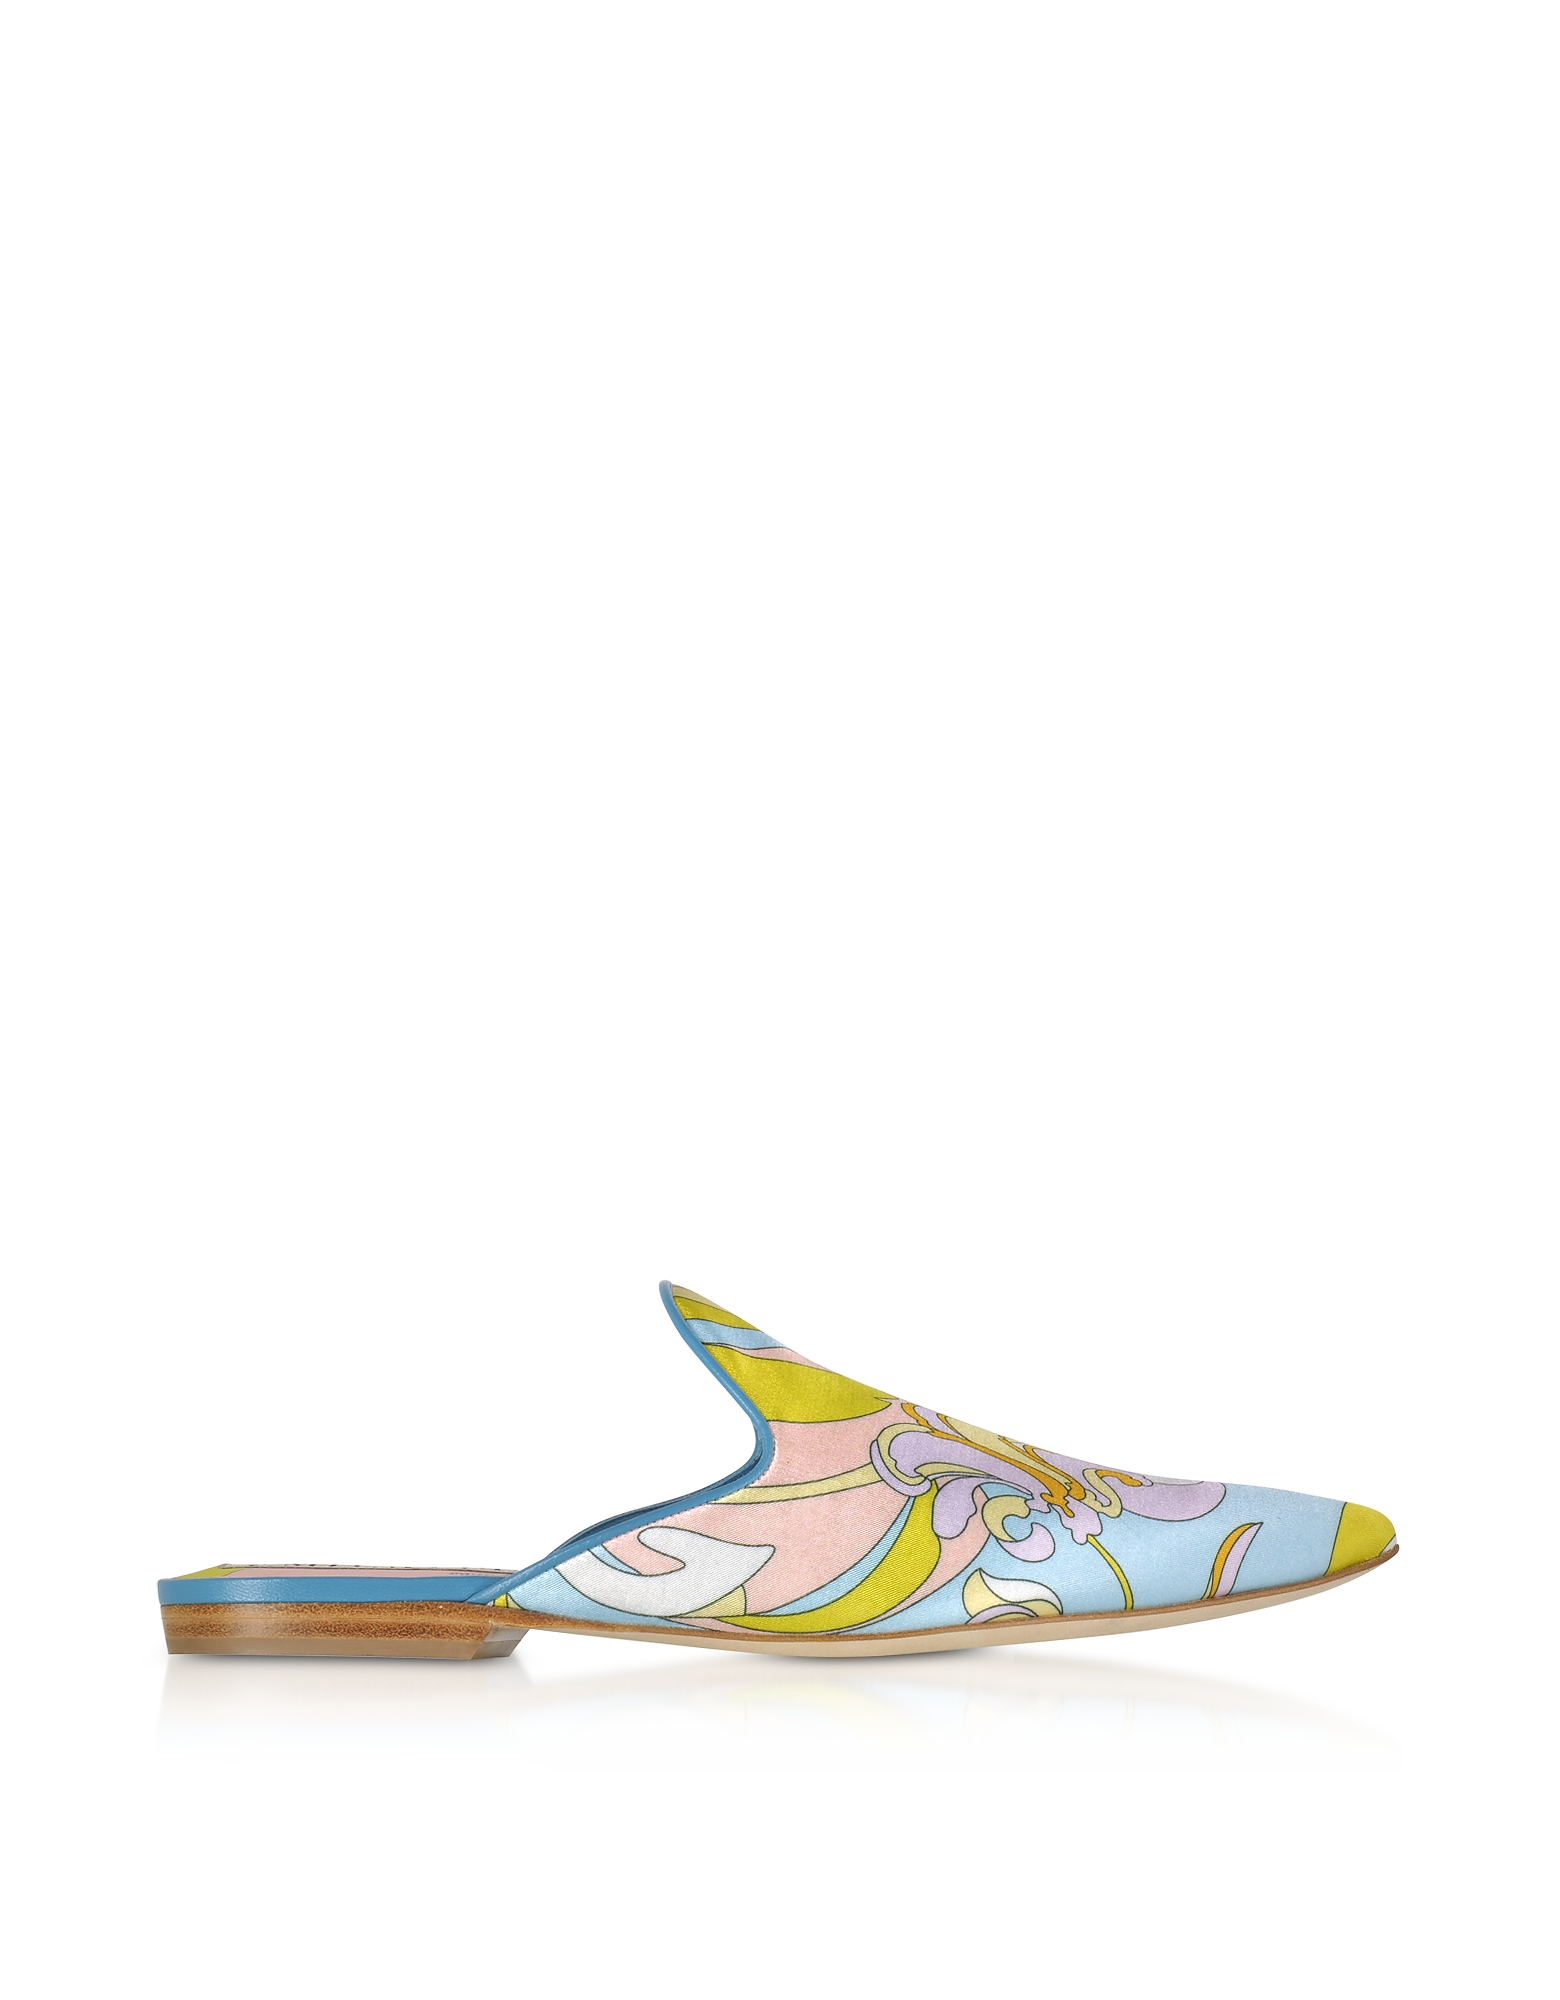 Emilio Pucci Shoes, Lemon Satin Printed Flat Mules